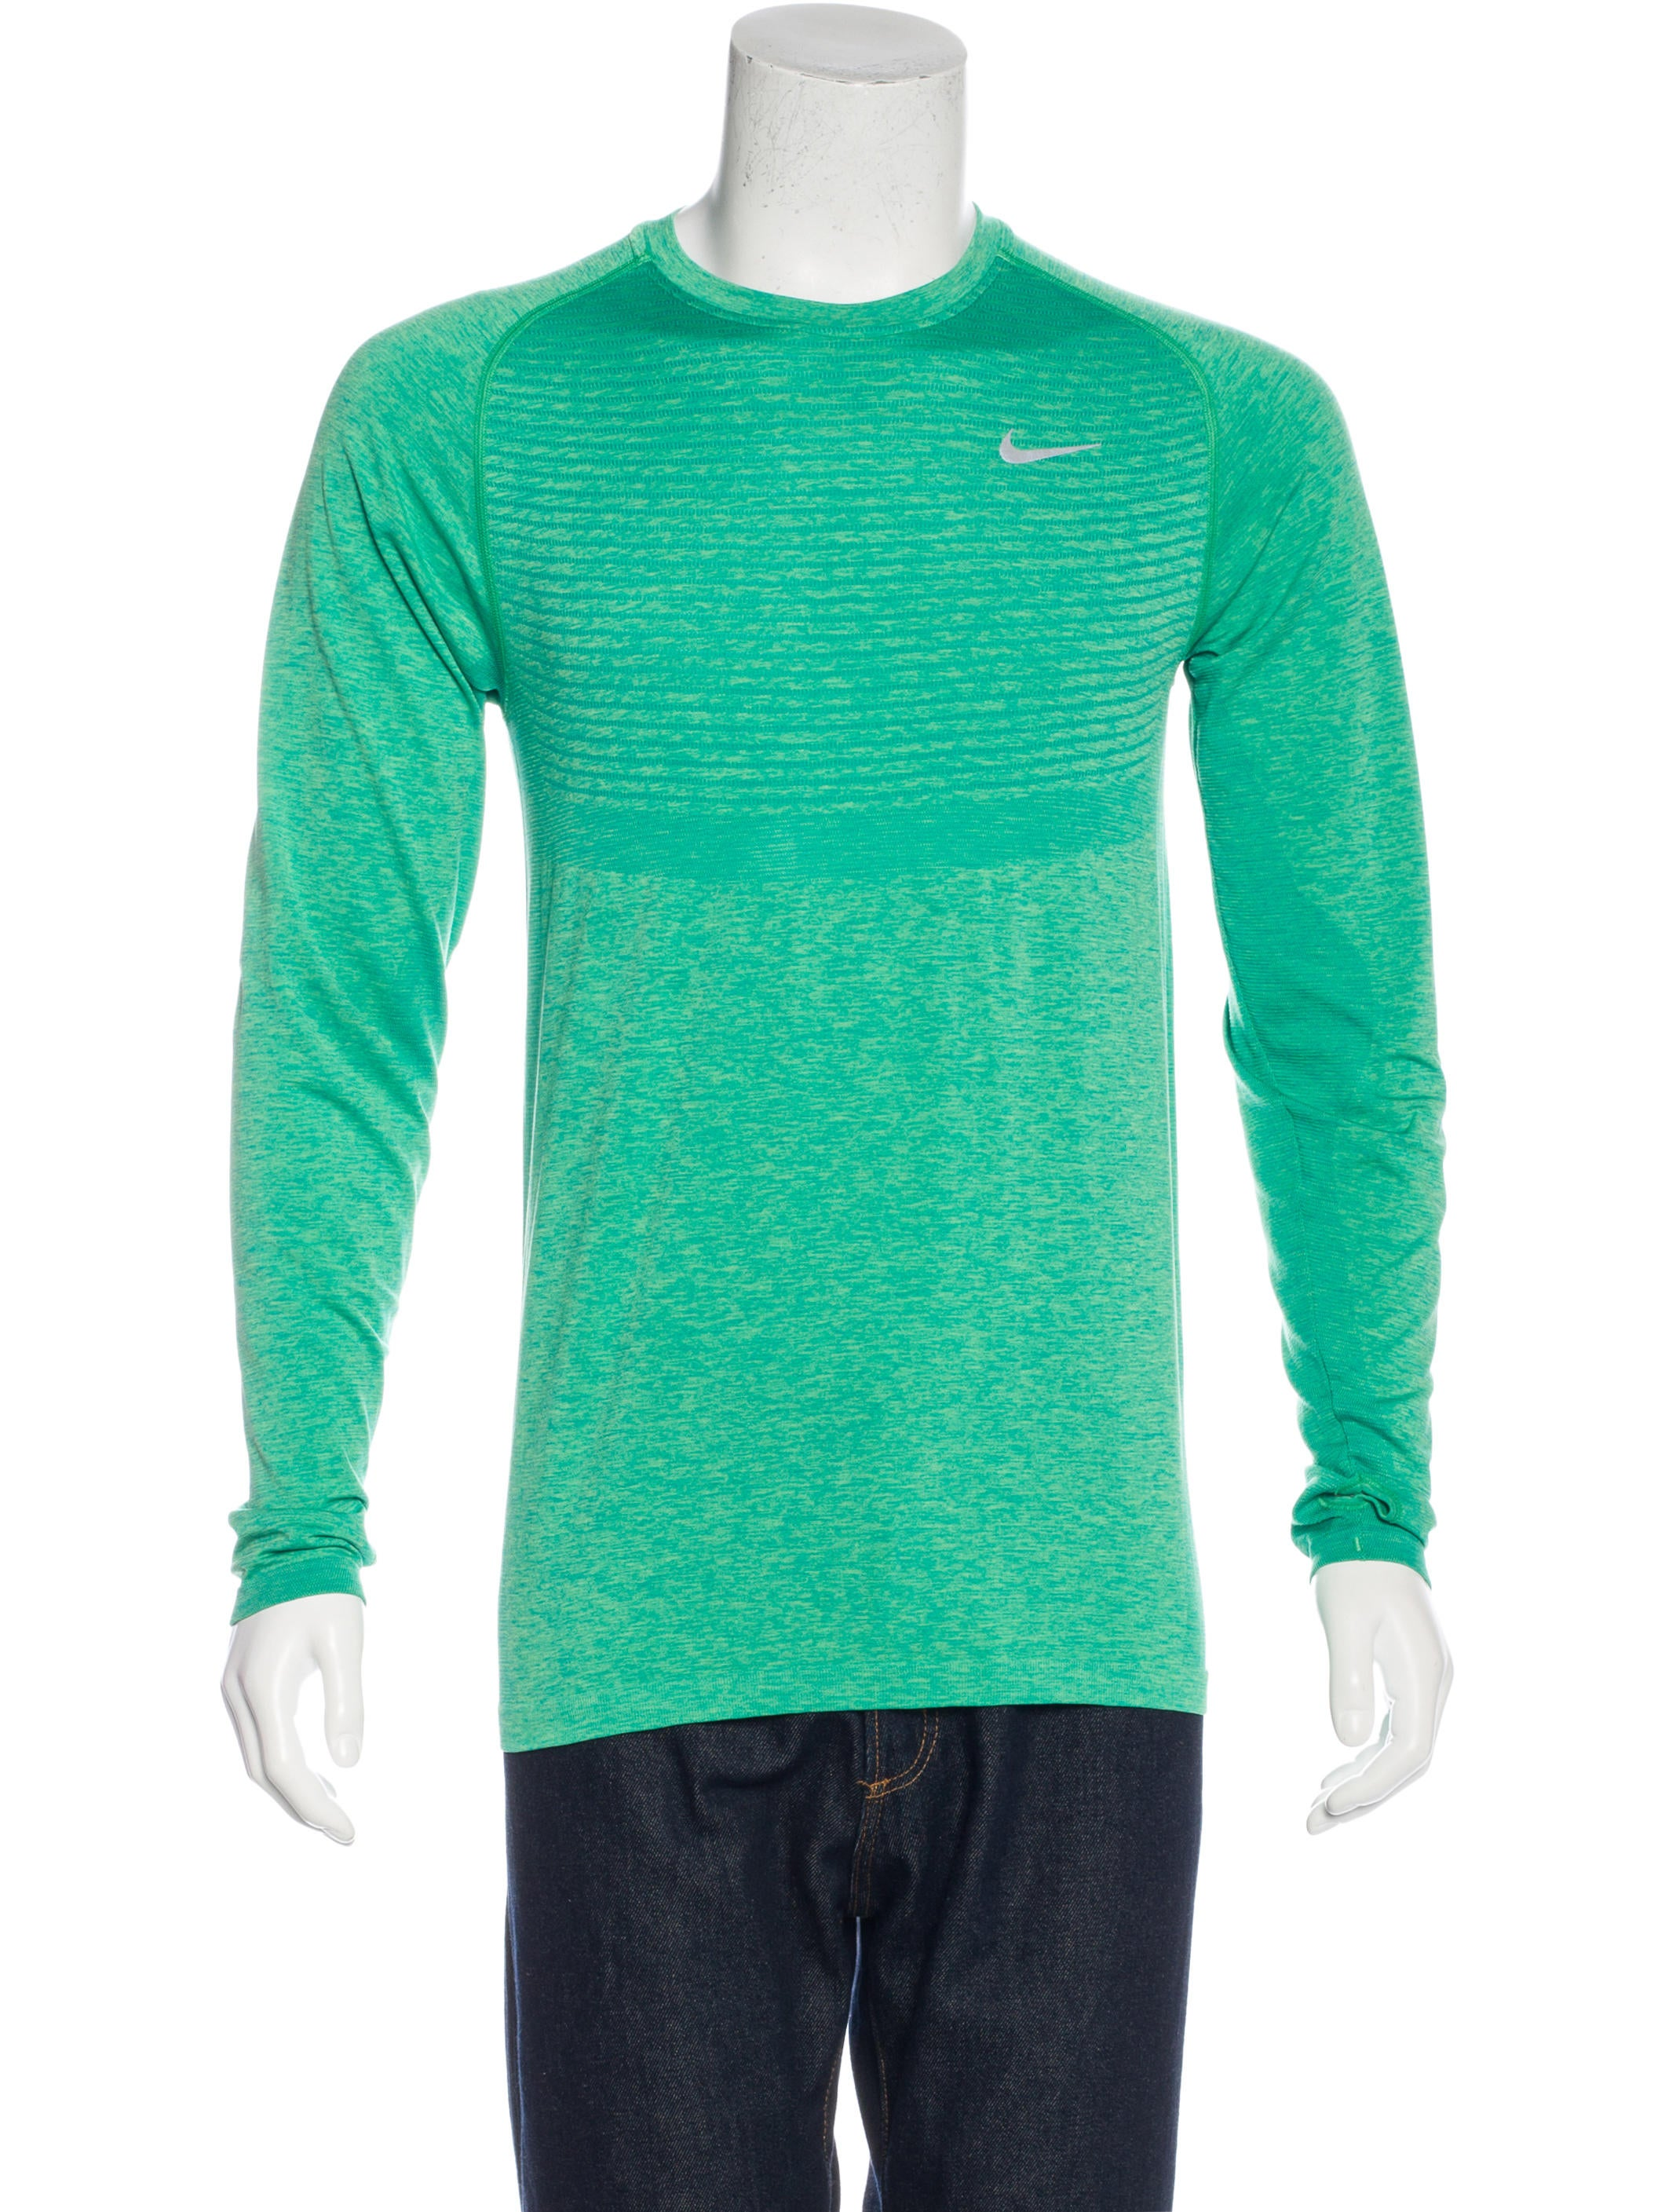 Nike dri fit running t shirt clothing wu221118 the for Dri fit dress shirts